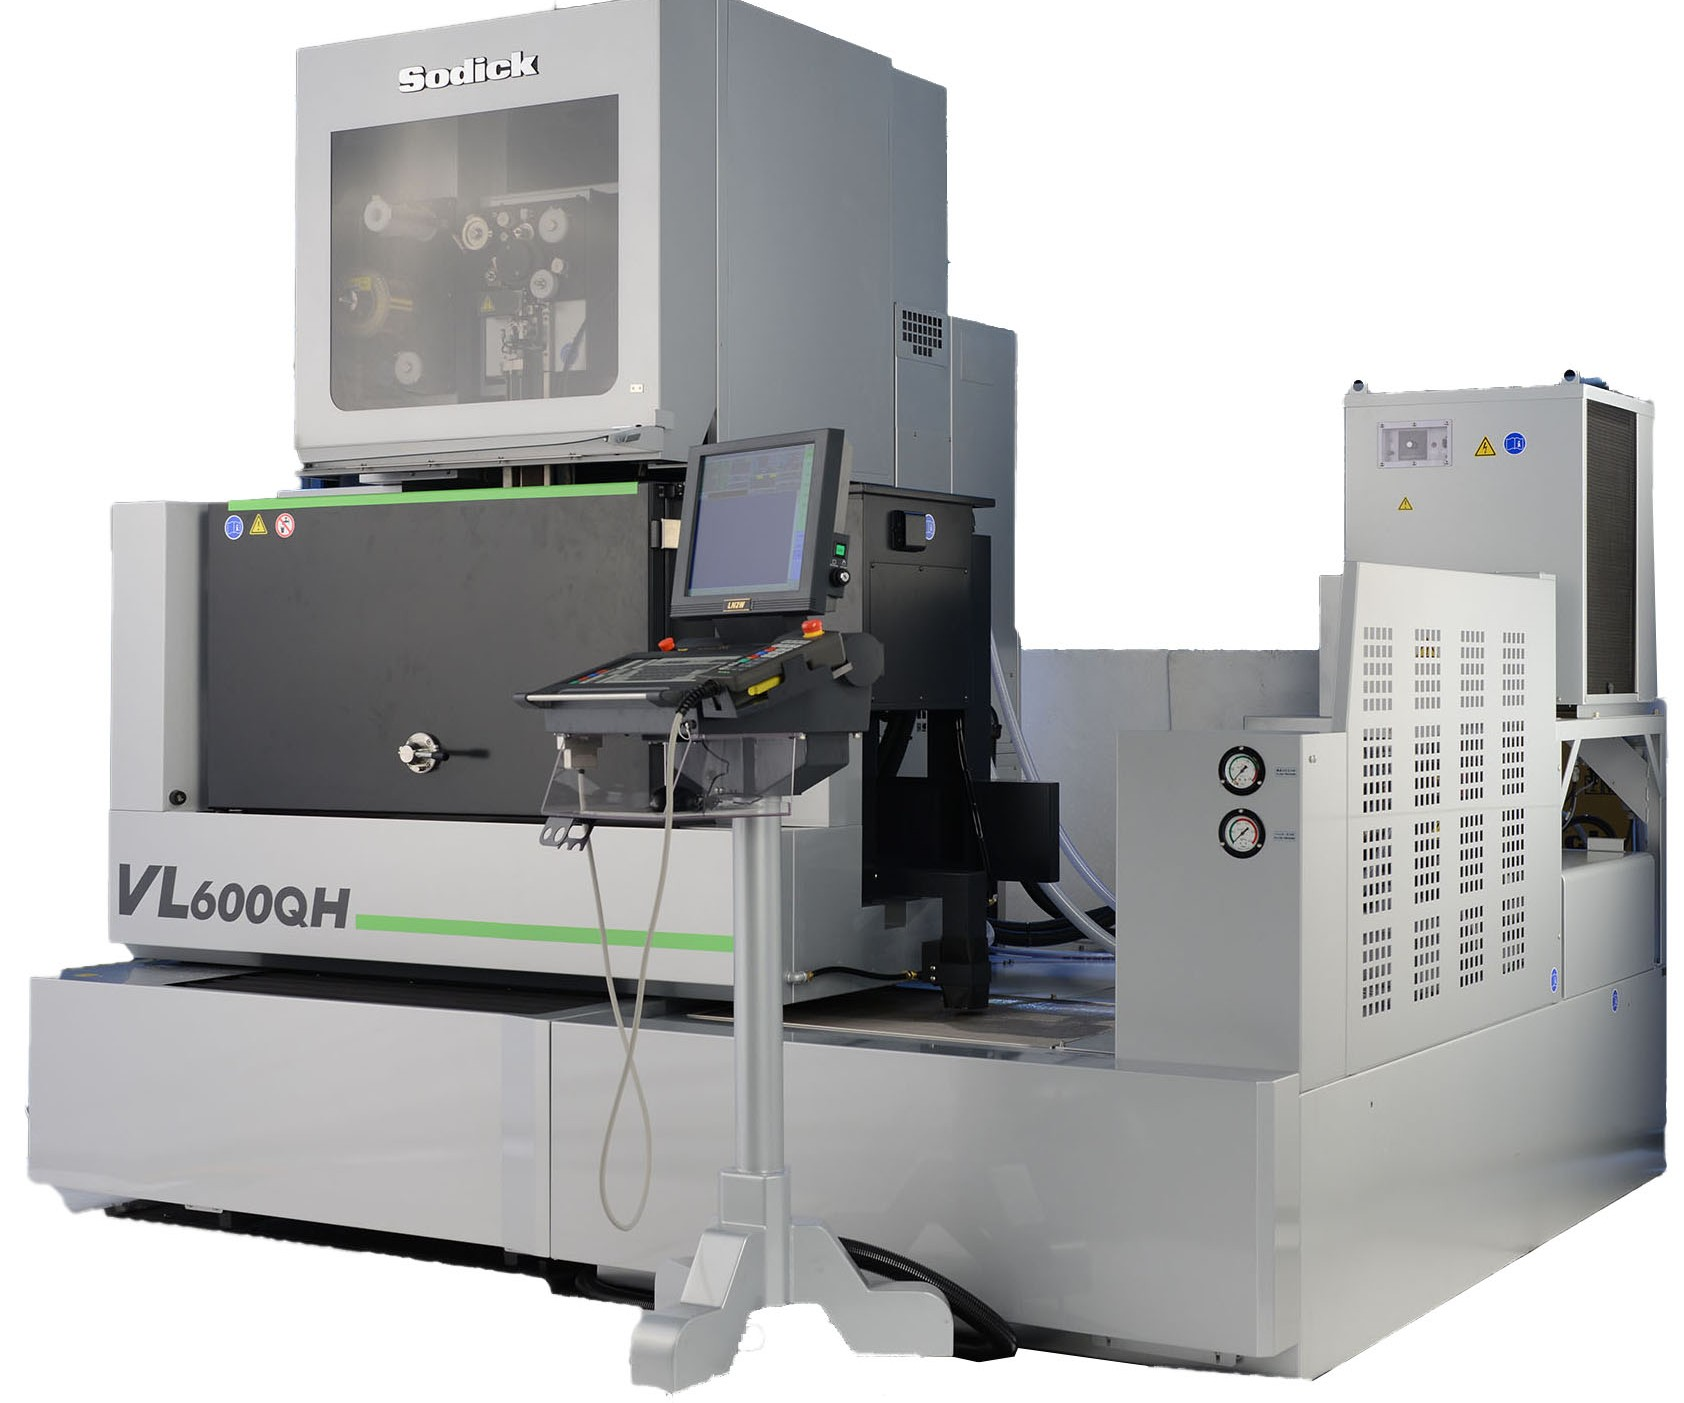 Sodick will display its VL600QH EDM at IMTS 2018.